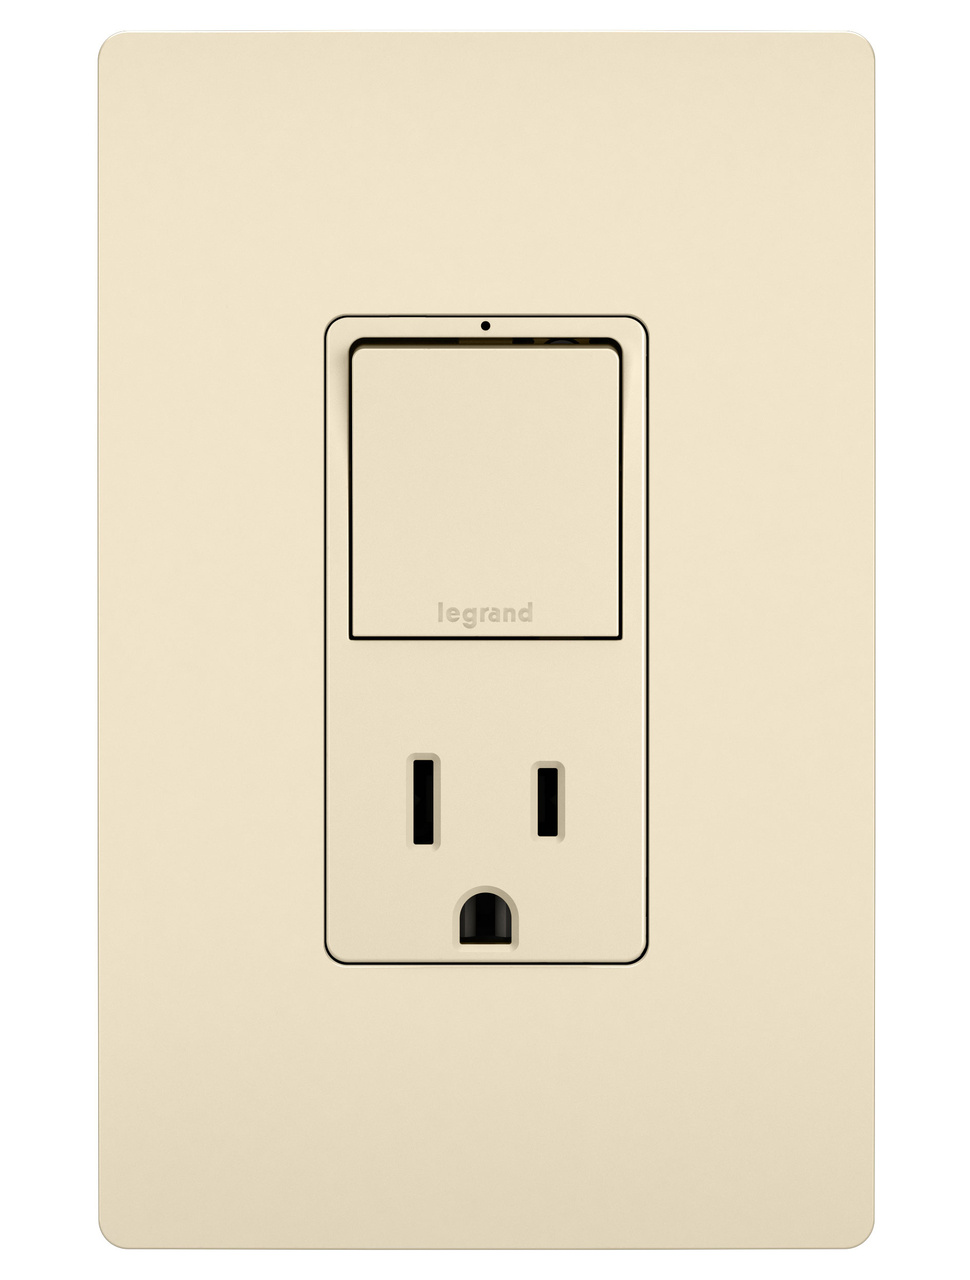 3 way outlet hunter thermostat 44155c wiring diagram switches by legrand